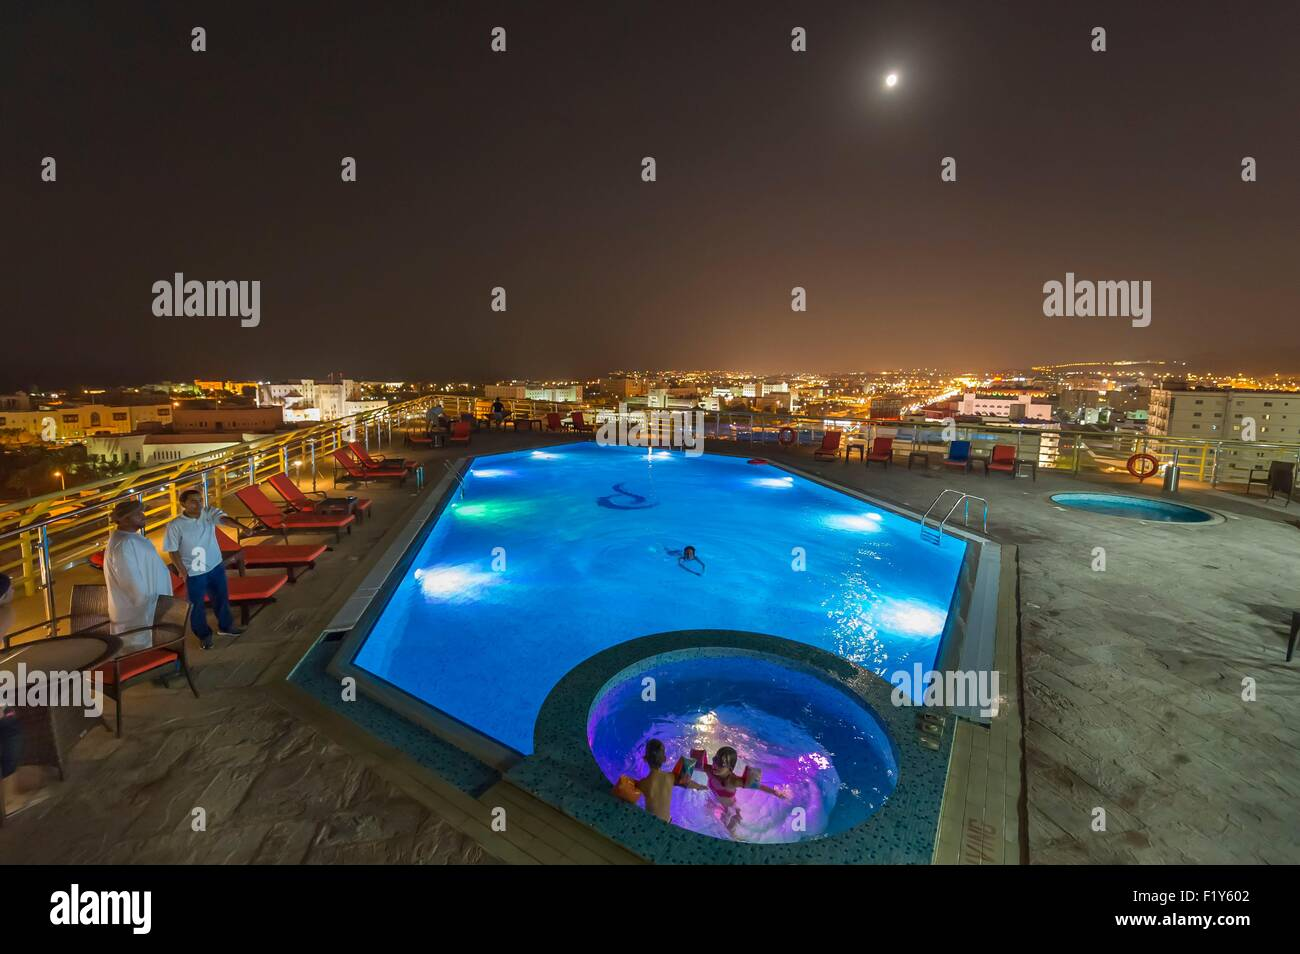 Oman, Muscat, All Seasons Hotel, piscine sur le toit Photo Stock